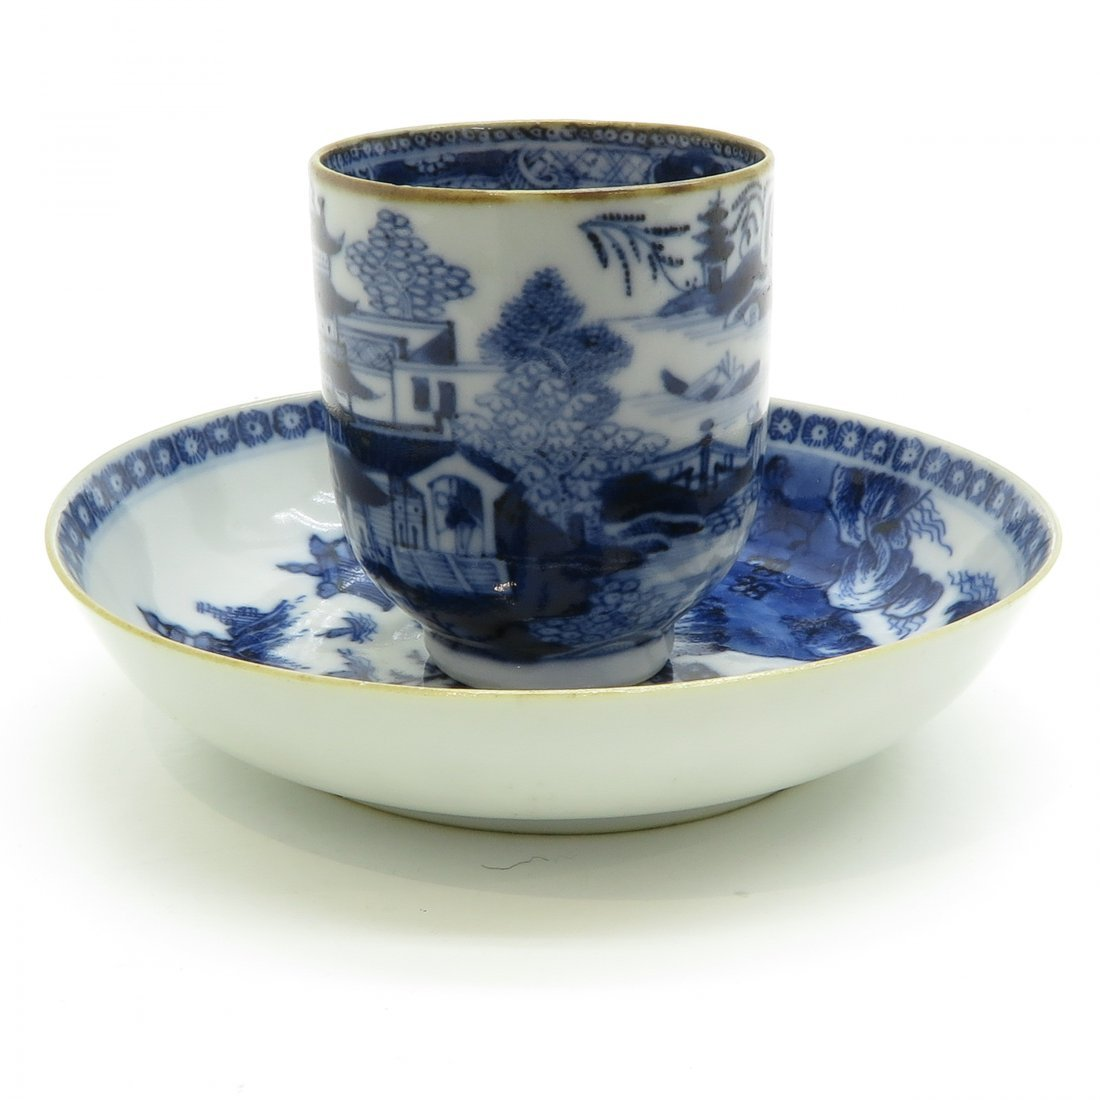 China Porcelain Cup and Saucer Circa 1800 - 4